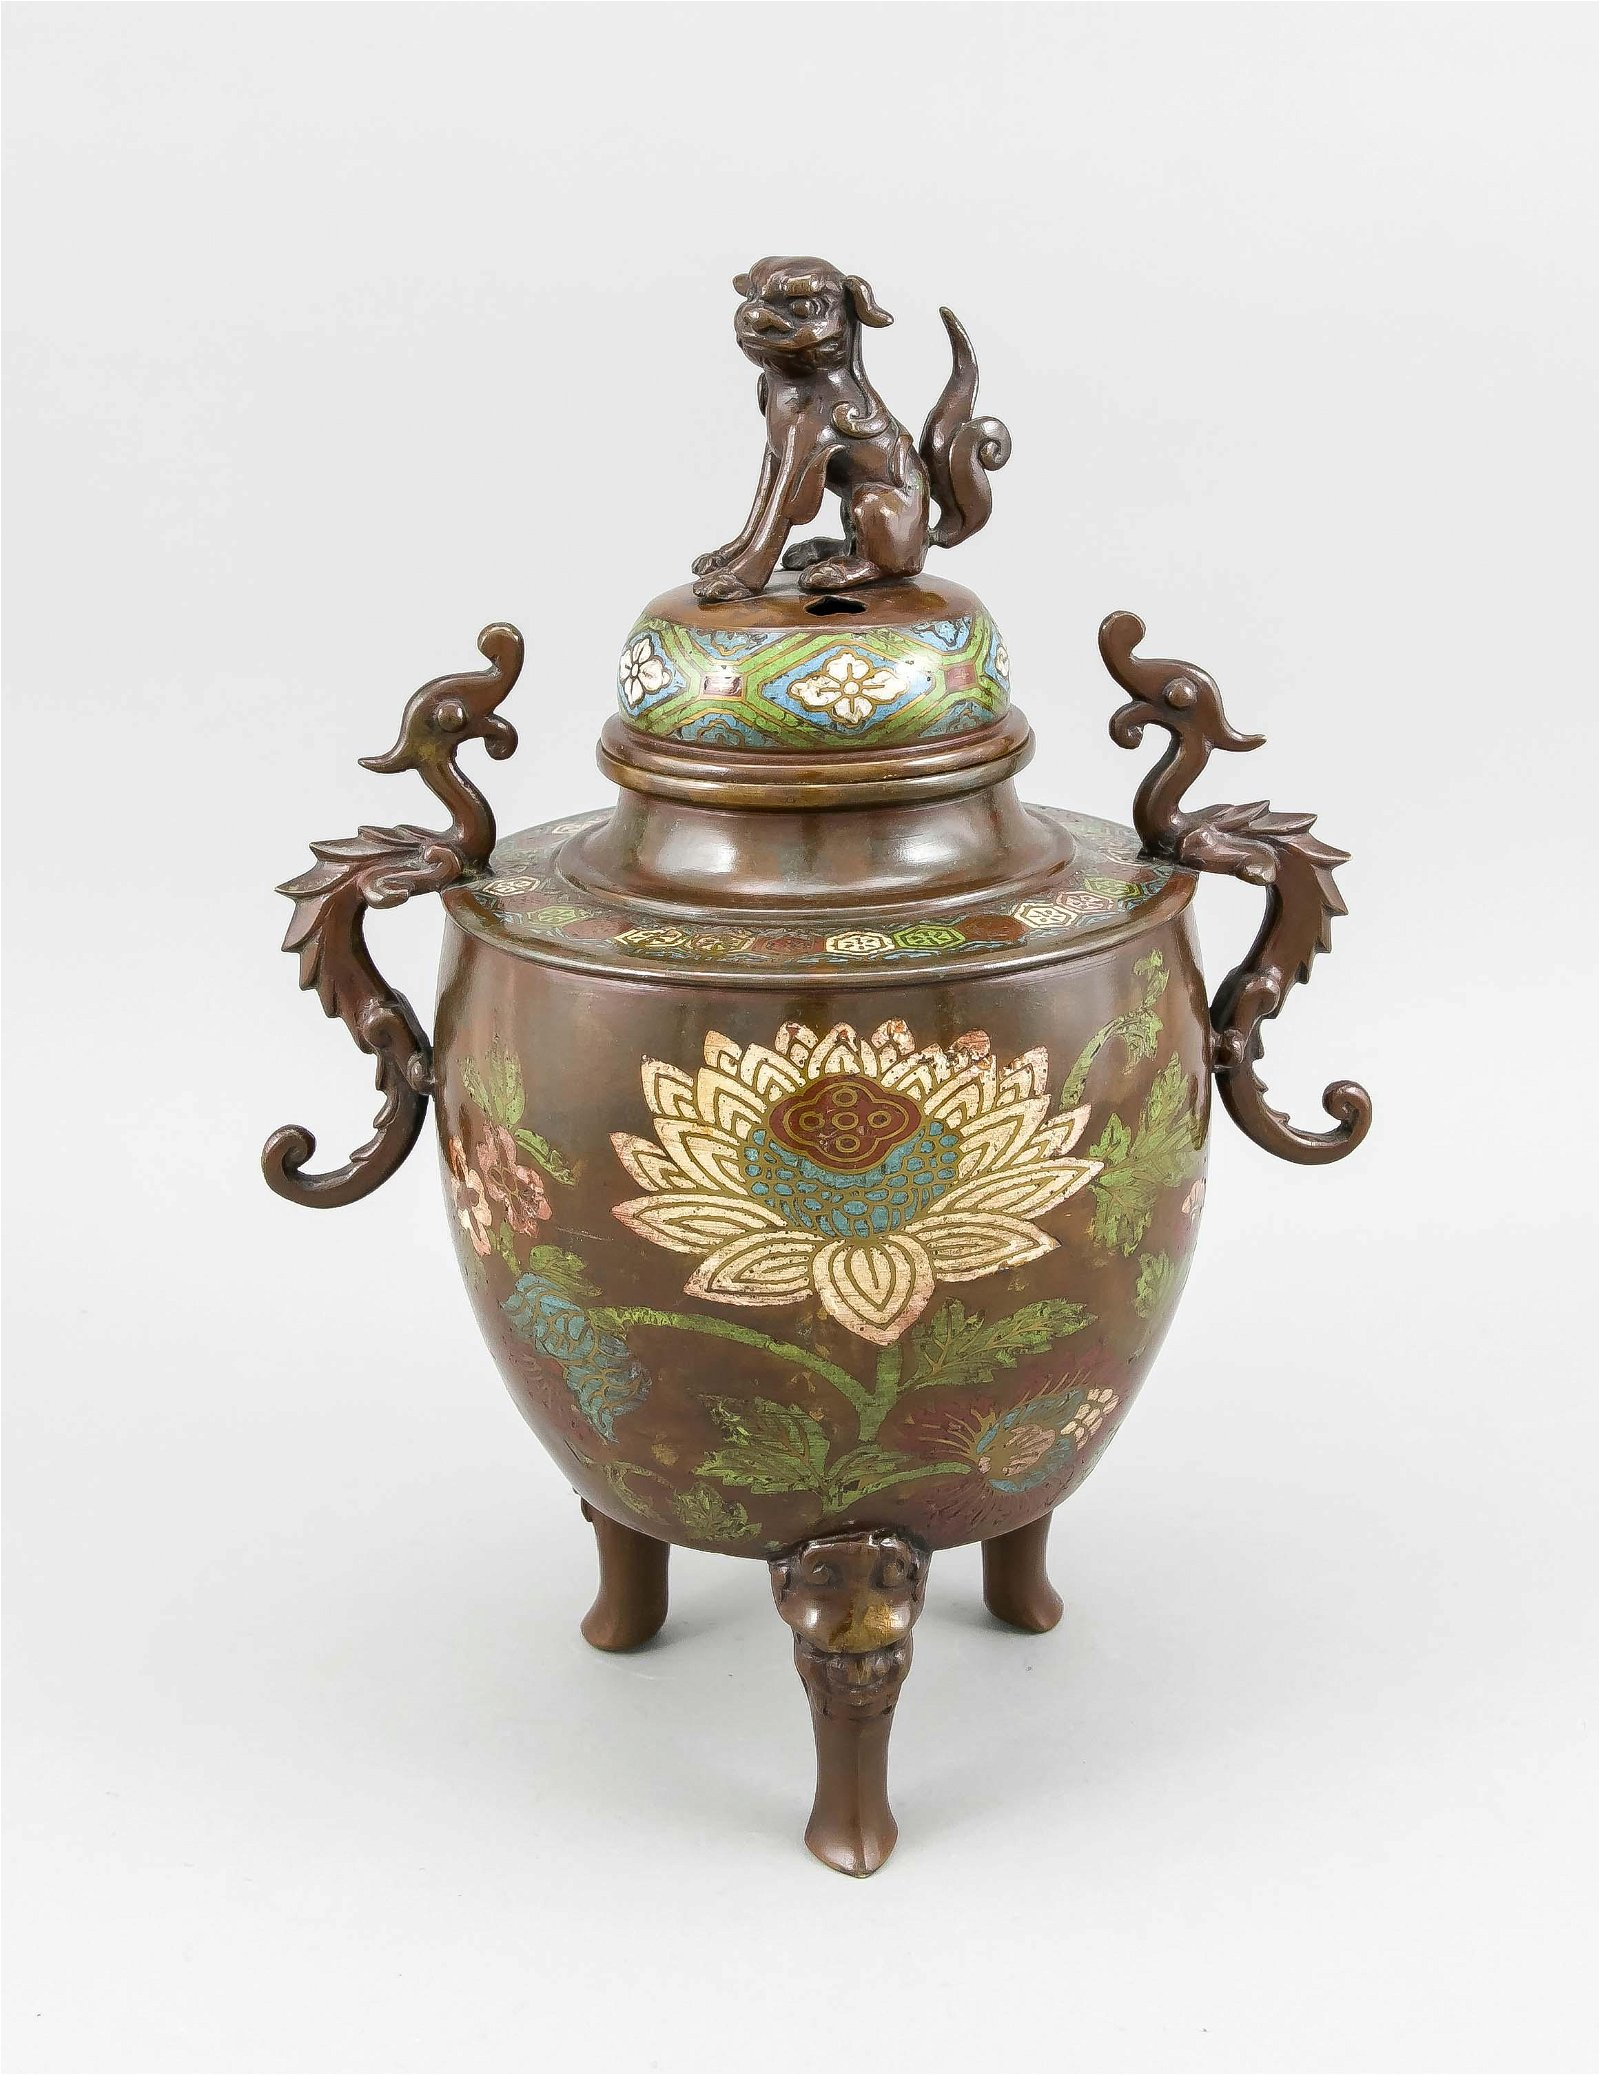 Large 19th century Chinese bronze incense burner with